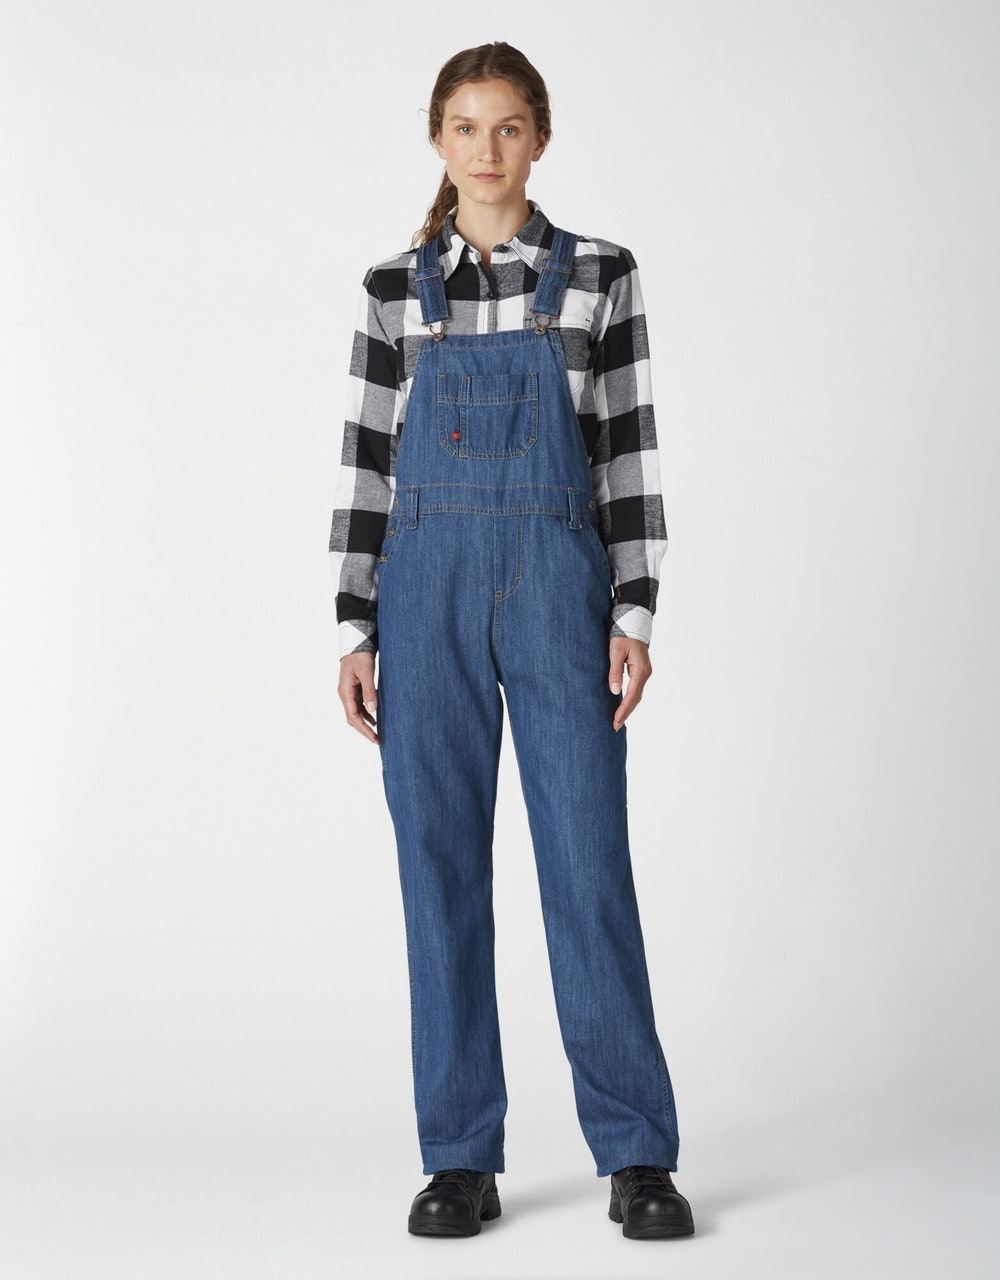 Women's Relaxed Fit Bib Overalls